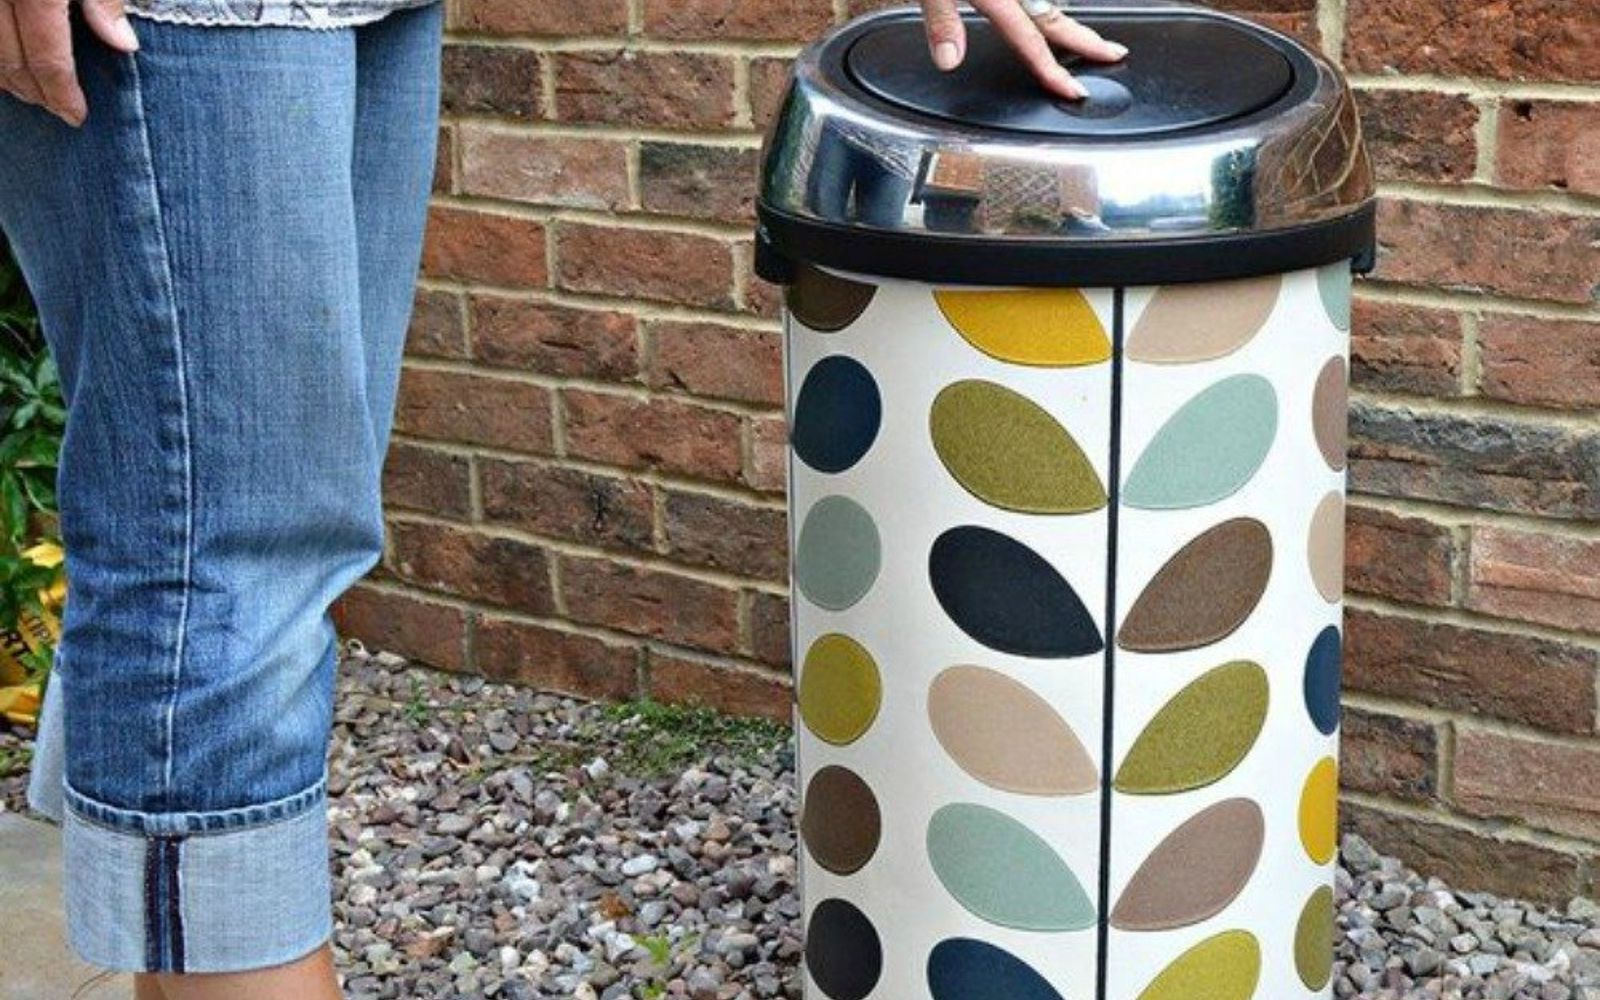 s 20 ways you never thought of using wallpaper, wall decor, Give your metal trash bin a makeover